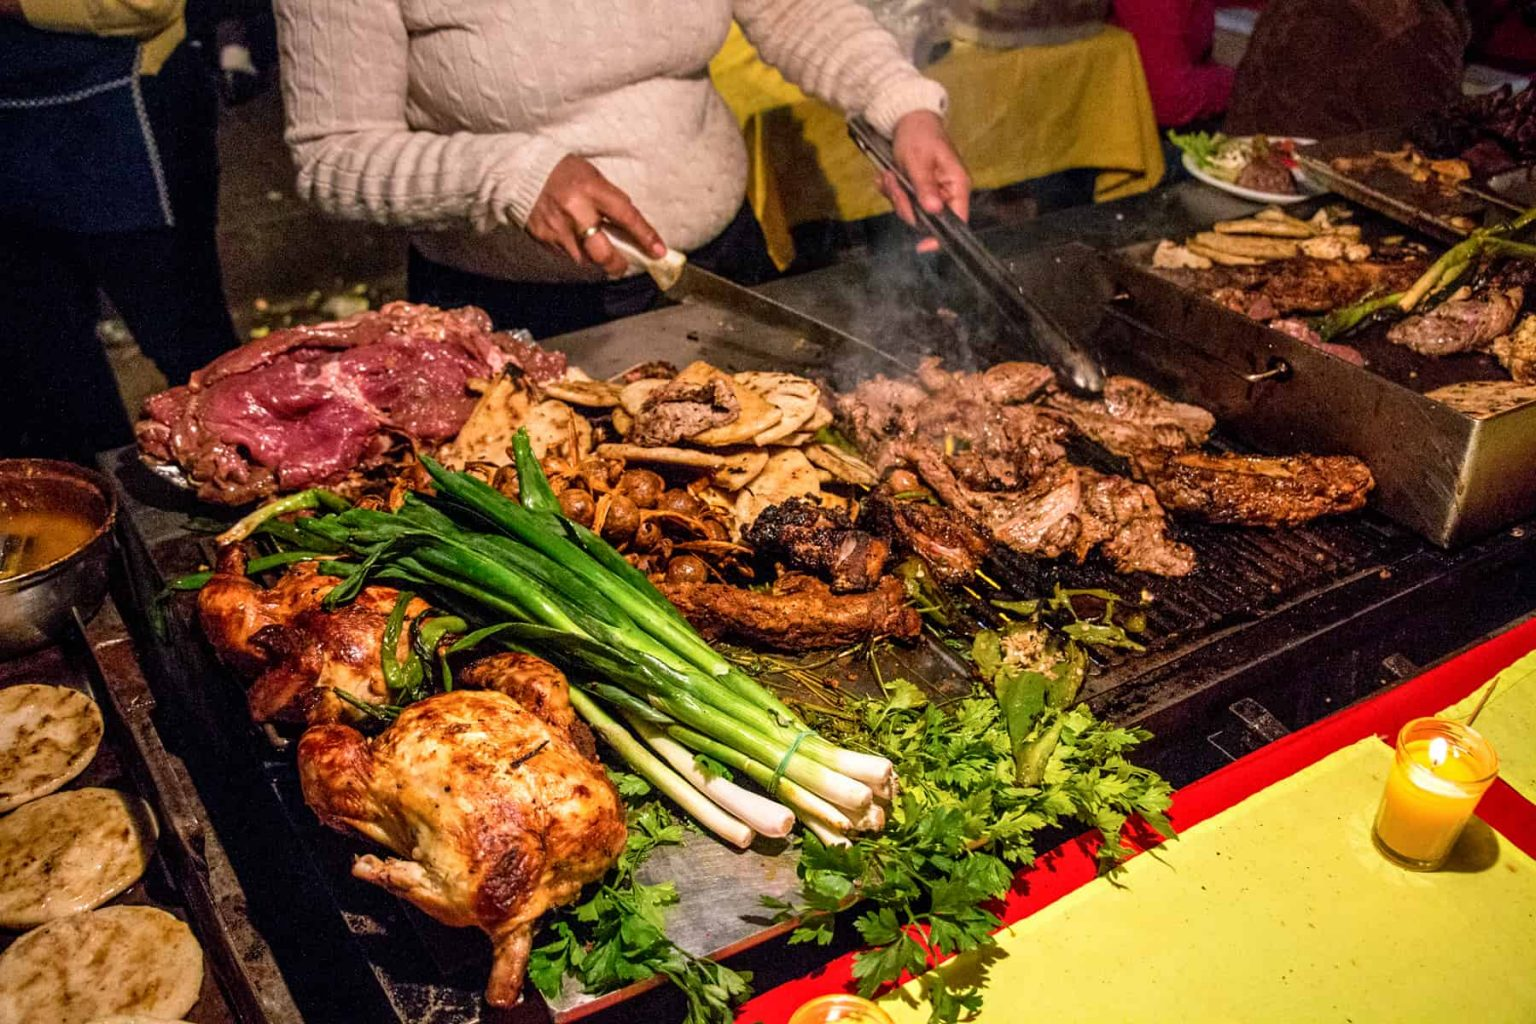 Meat and vegetables grilling at the Juayua Food Festival in El Salvador